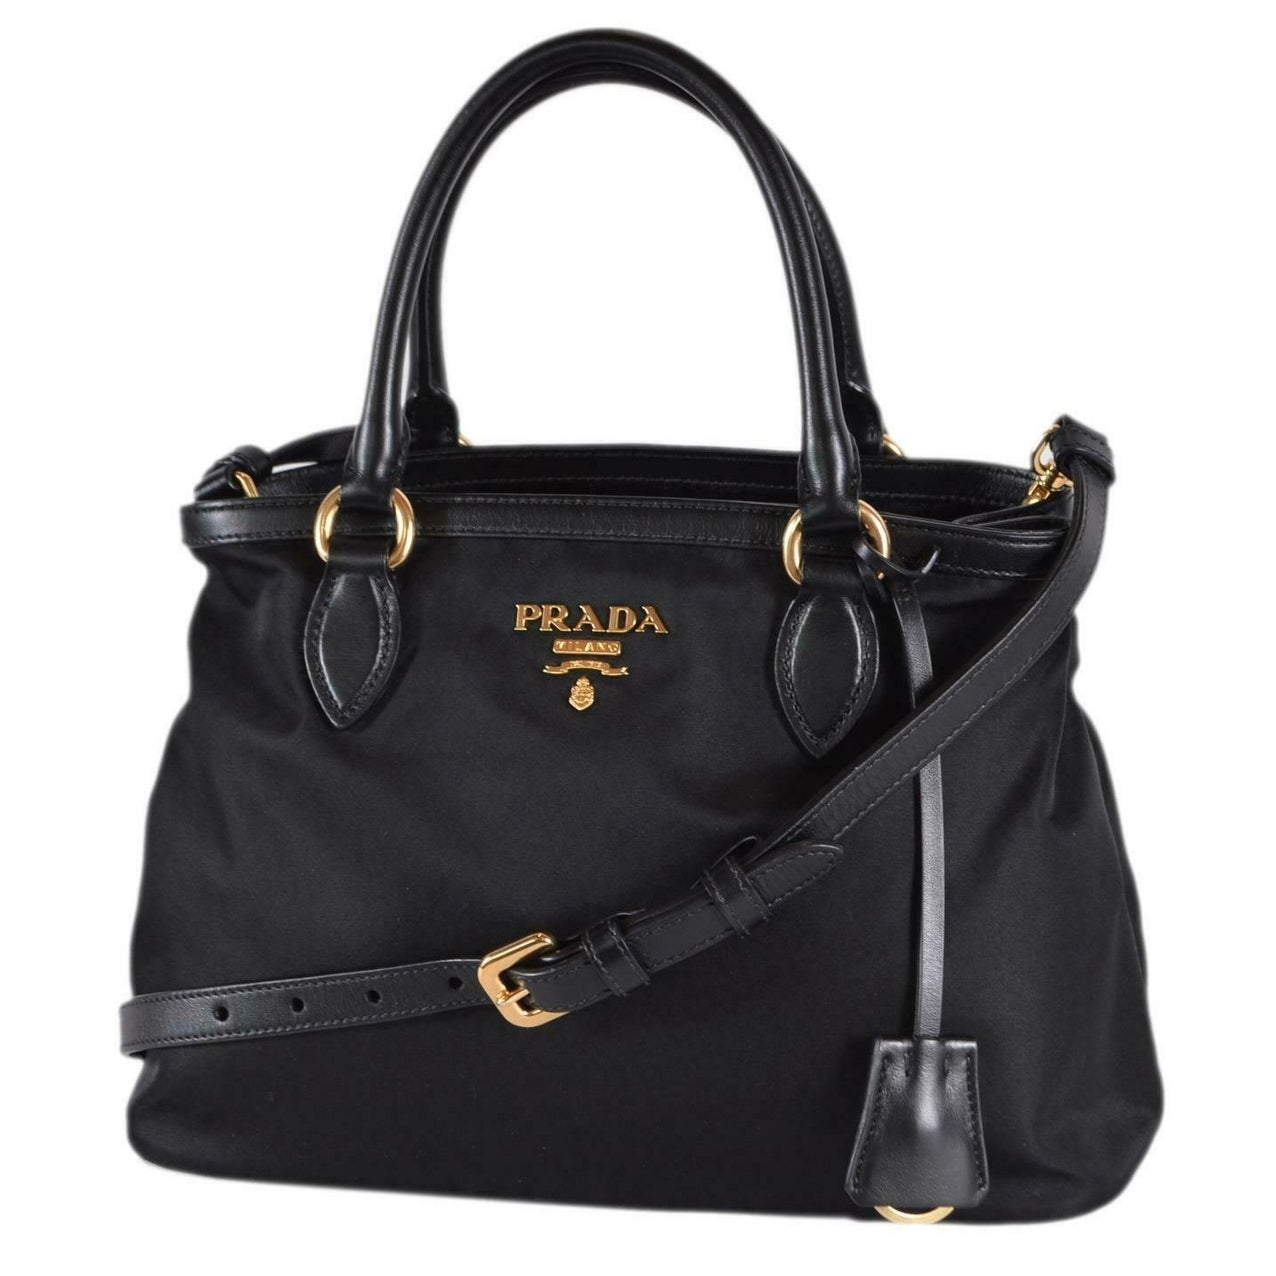 c505d020e07e Shop Prada 1BA173 Tessuto Nylon Leather Black Bauletto Handbag W/Crossbody  Strap - Free Shipping Today - Overstock - 27778030